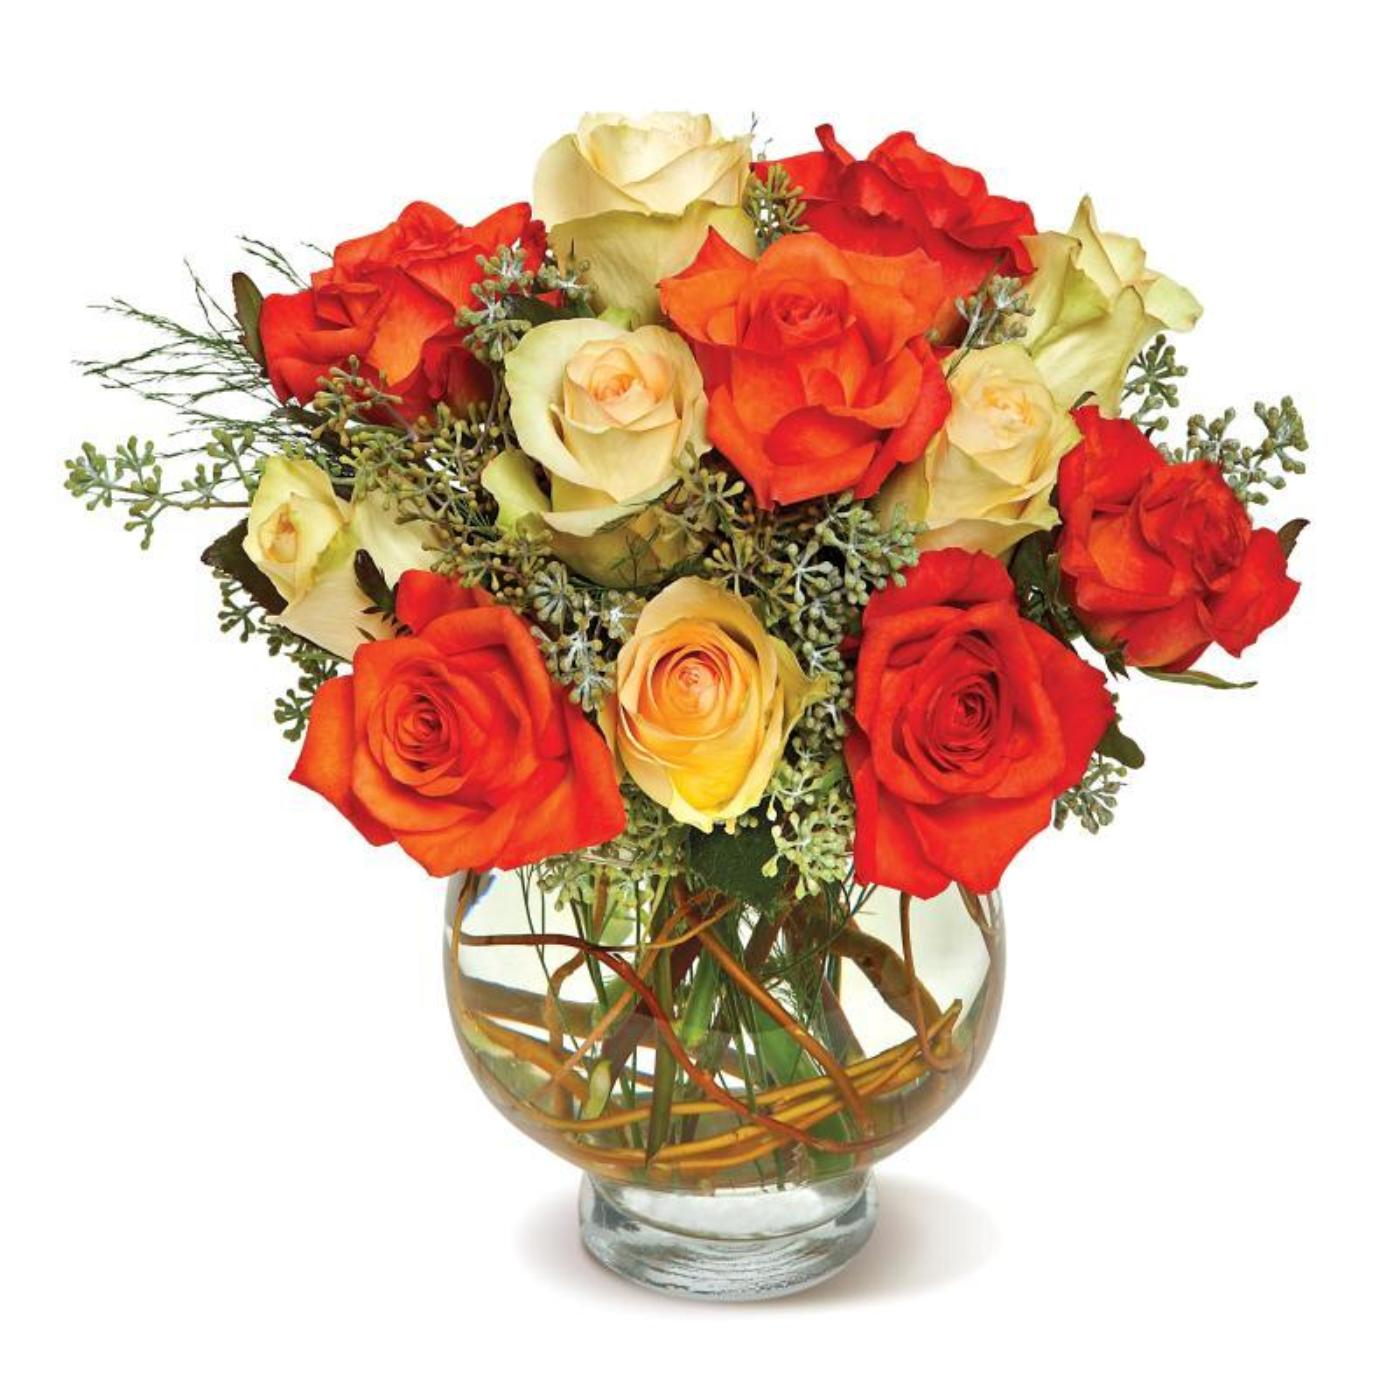 Harvest Moon Roses in a Glass Vase